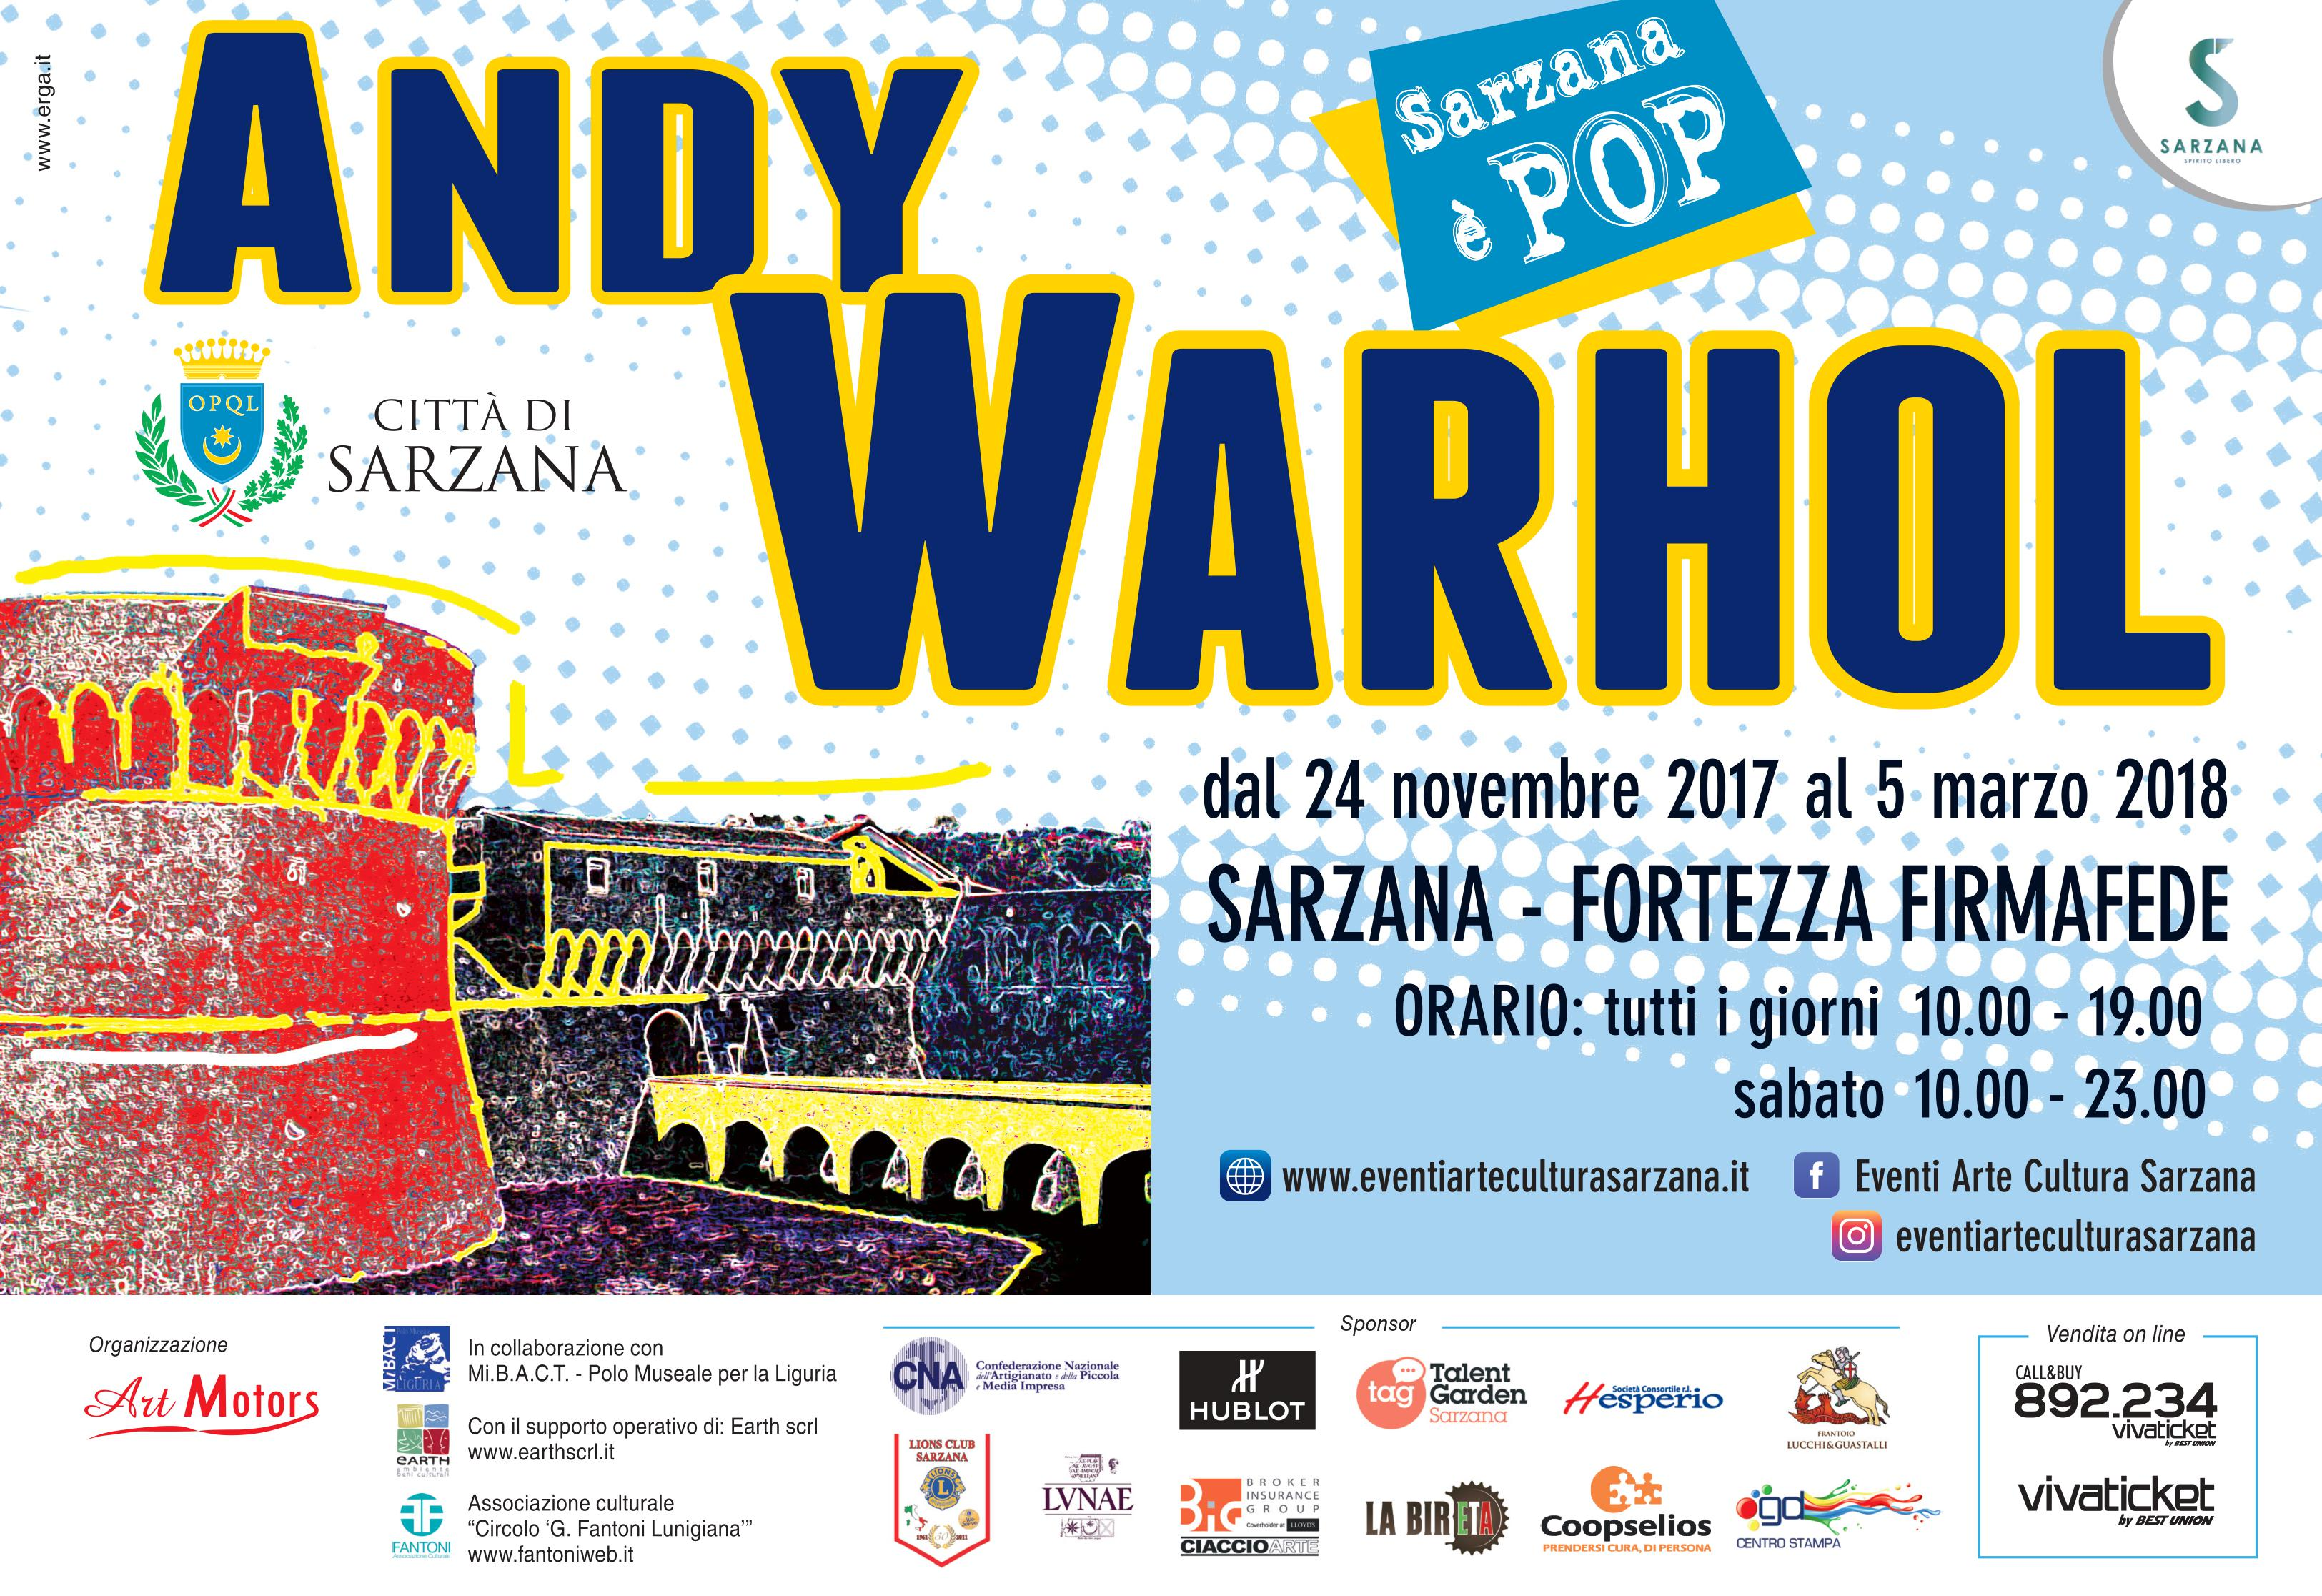 Andy Warhol, Fortezza Firmafede